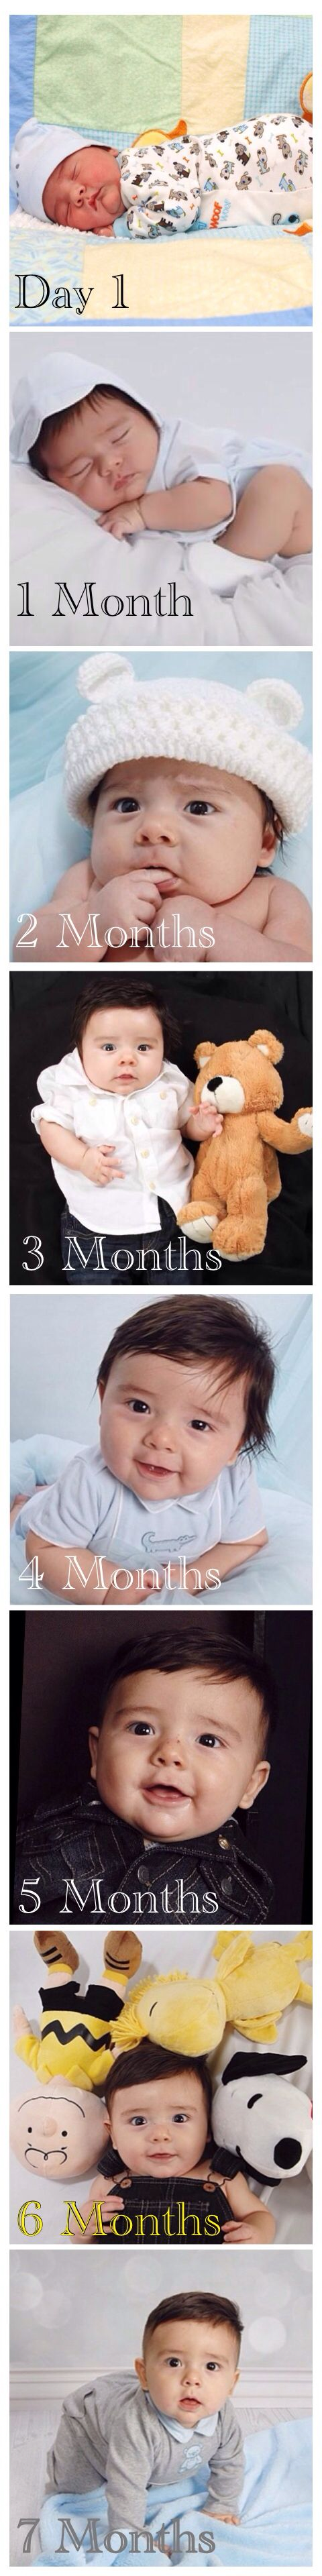 Baby growth 1 day old 1 month old 2 months old 3 months old 4 months old 5 months old 6 months old 7 month old photo ideas cute baby picture. Baby photo ideas.